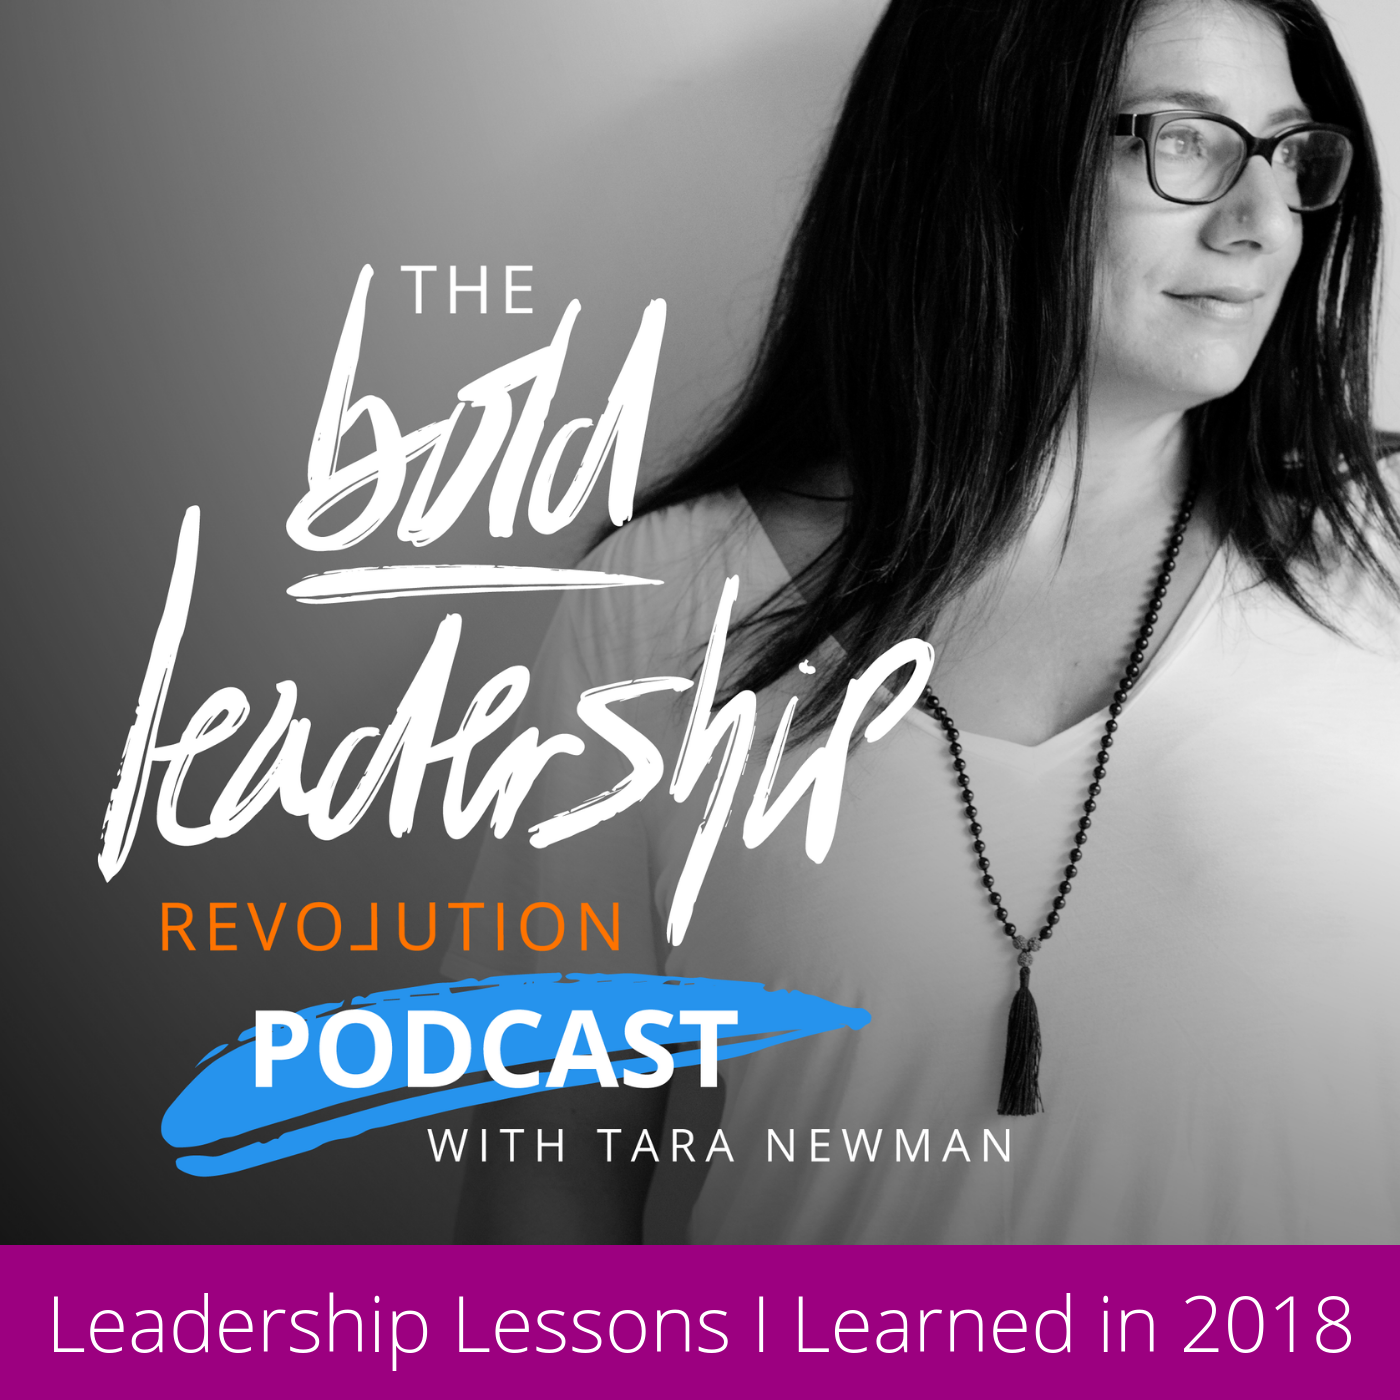 Leadership Lessons I Learned in 2018